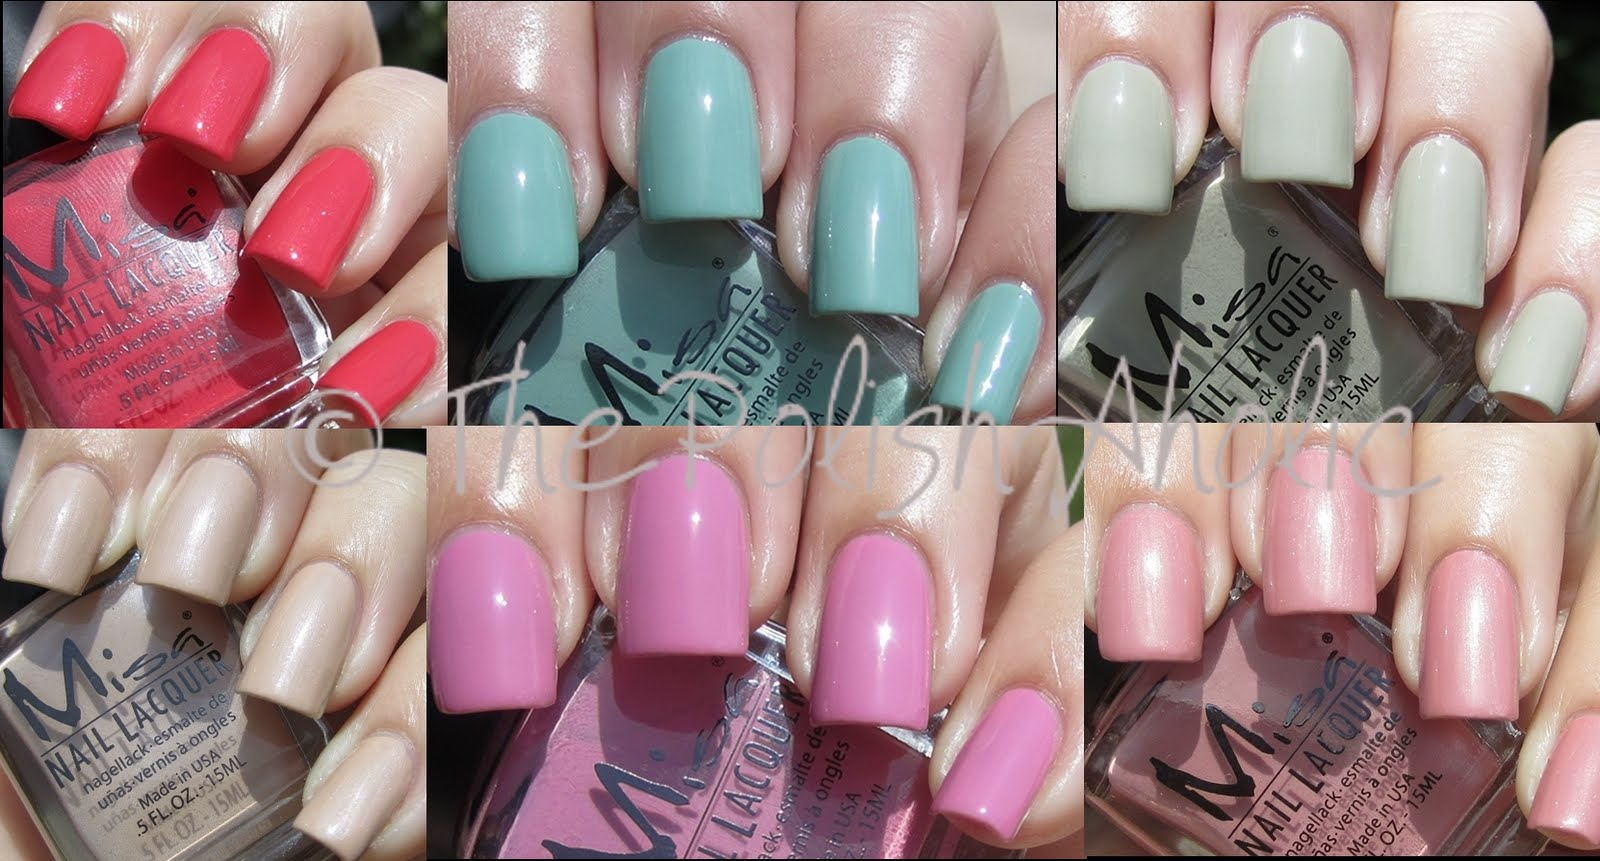 The PolishAholic: Misa Hip To My Jive Fall 2011 Collection Swatches